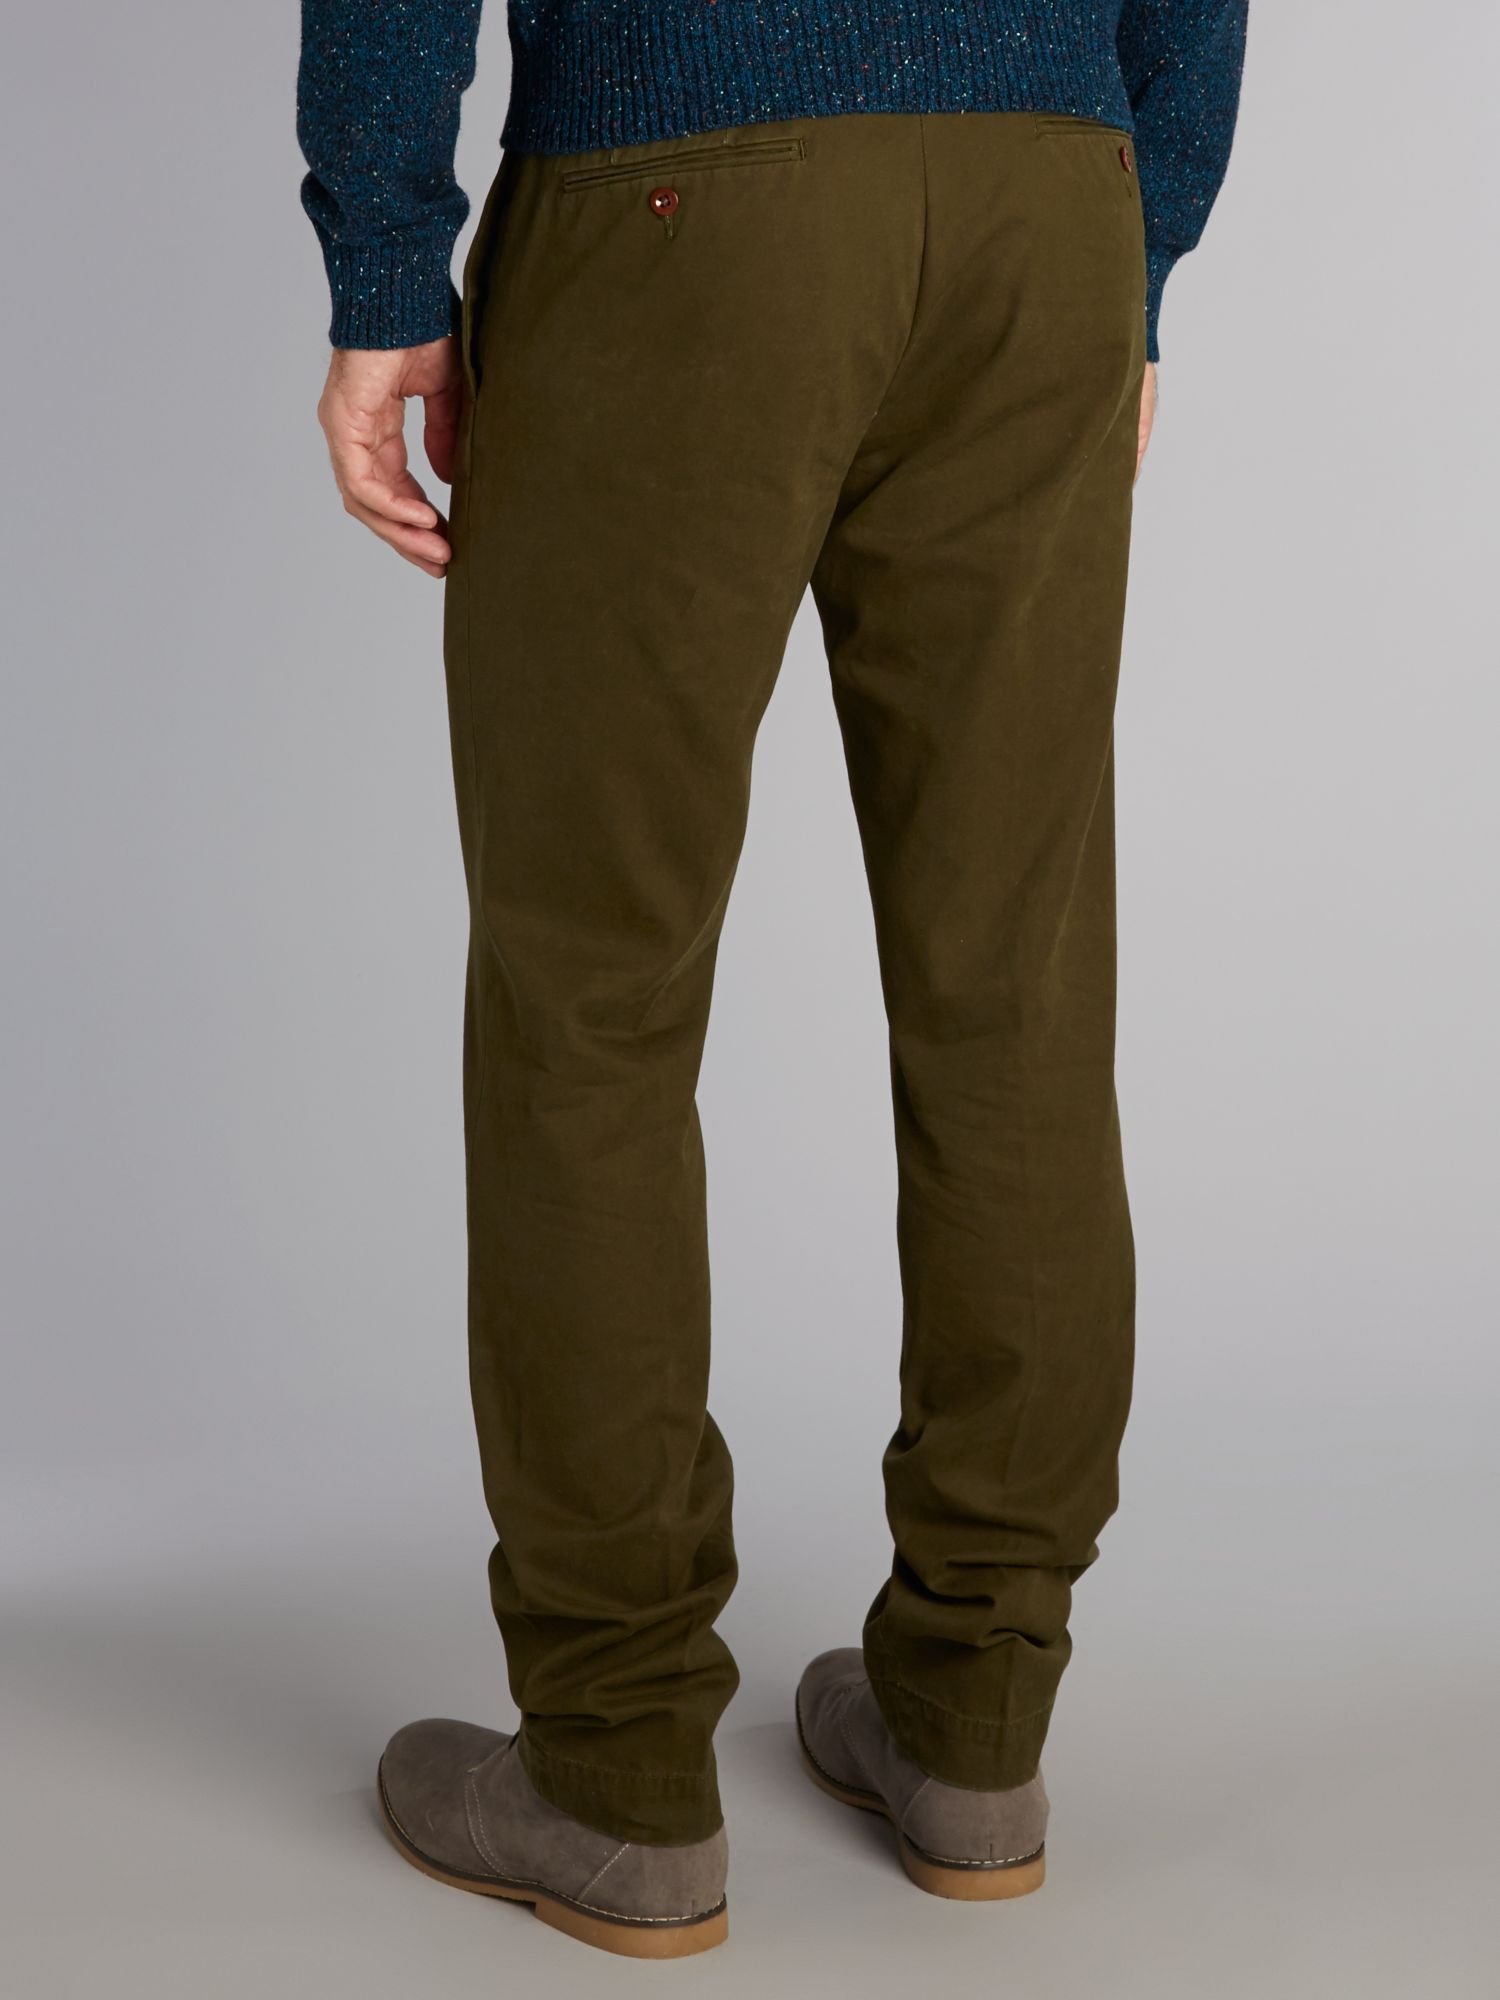 Lyst Polo Ralph Lauren Custom Fit Chinos In Green For Men